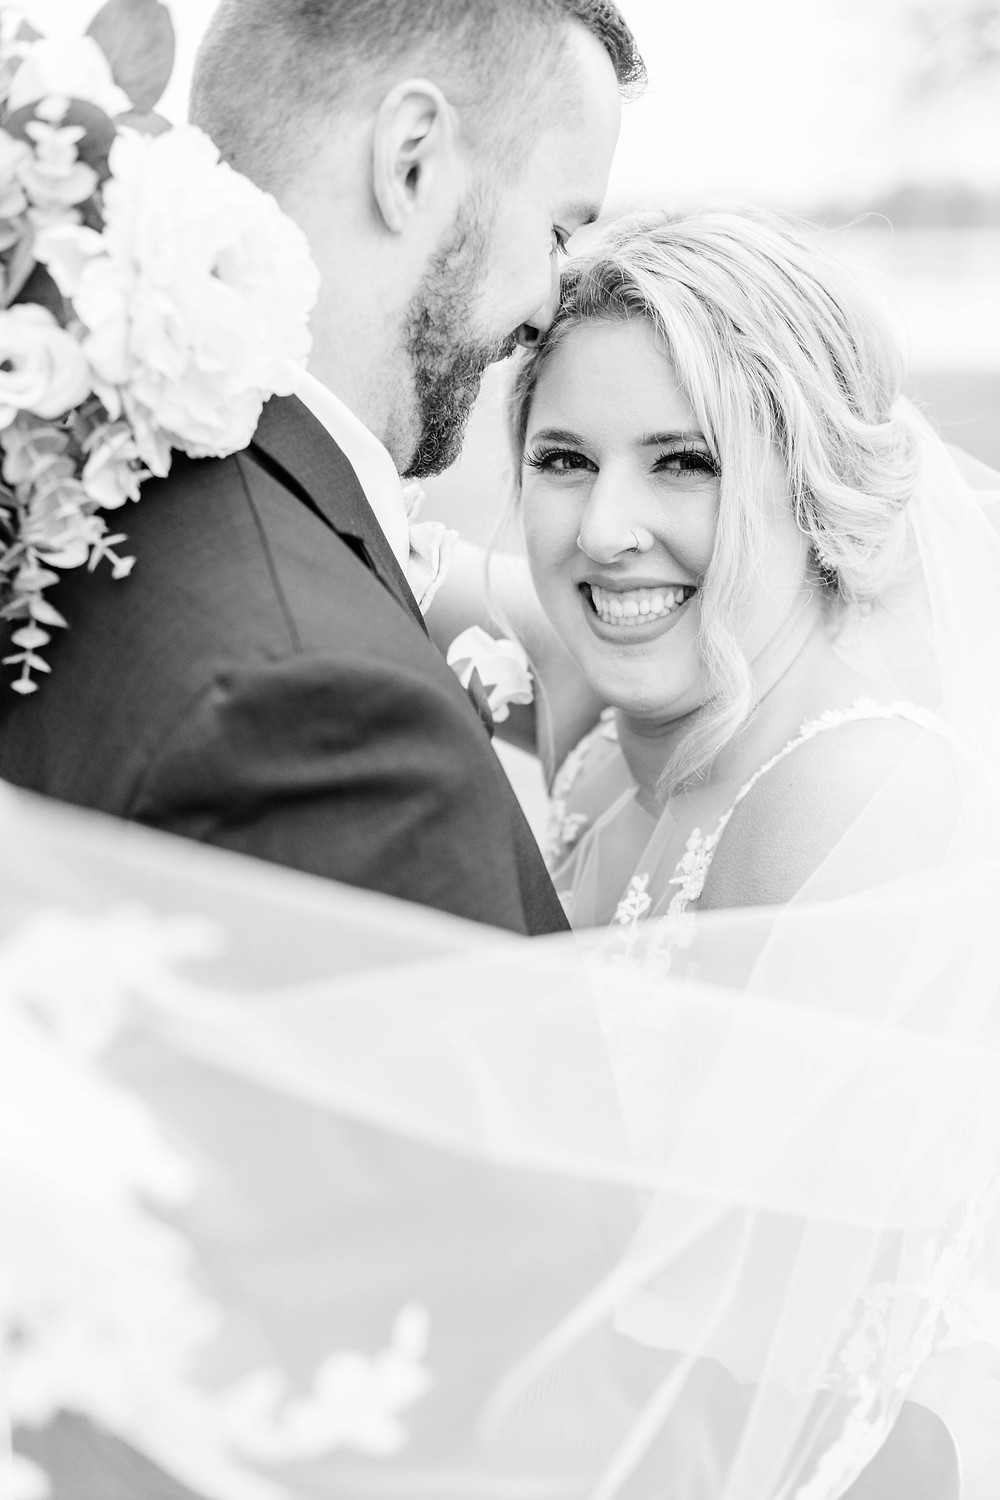 josh and Andrea photography husband and wife team michigan winter bride and groom smiling